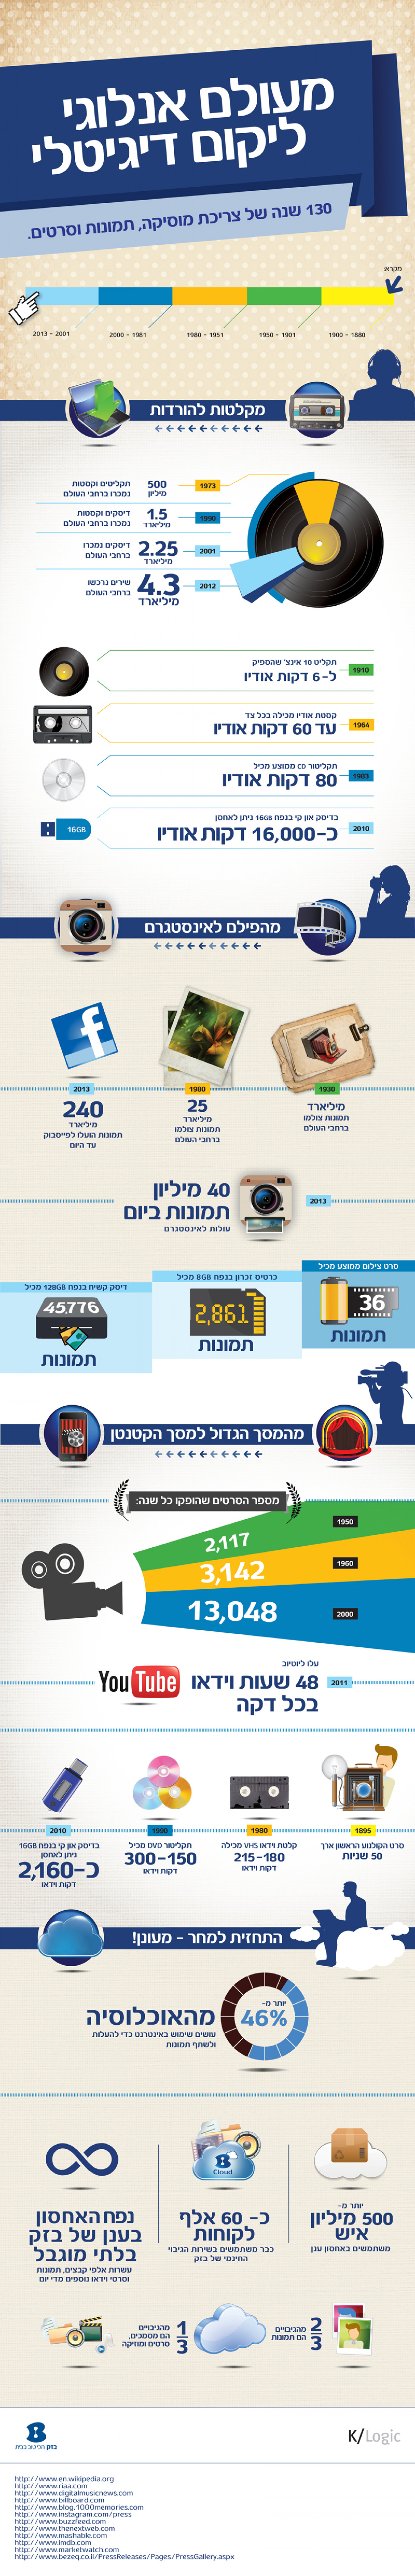 From an Analog World to a Digital Universe Infographic